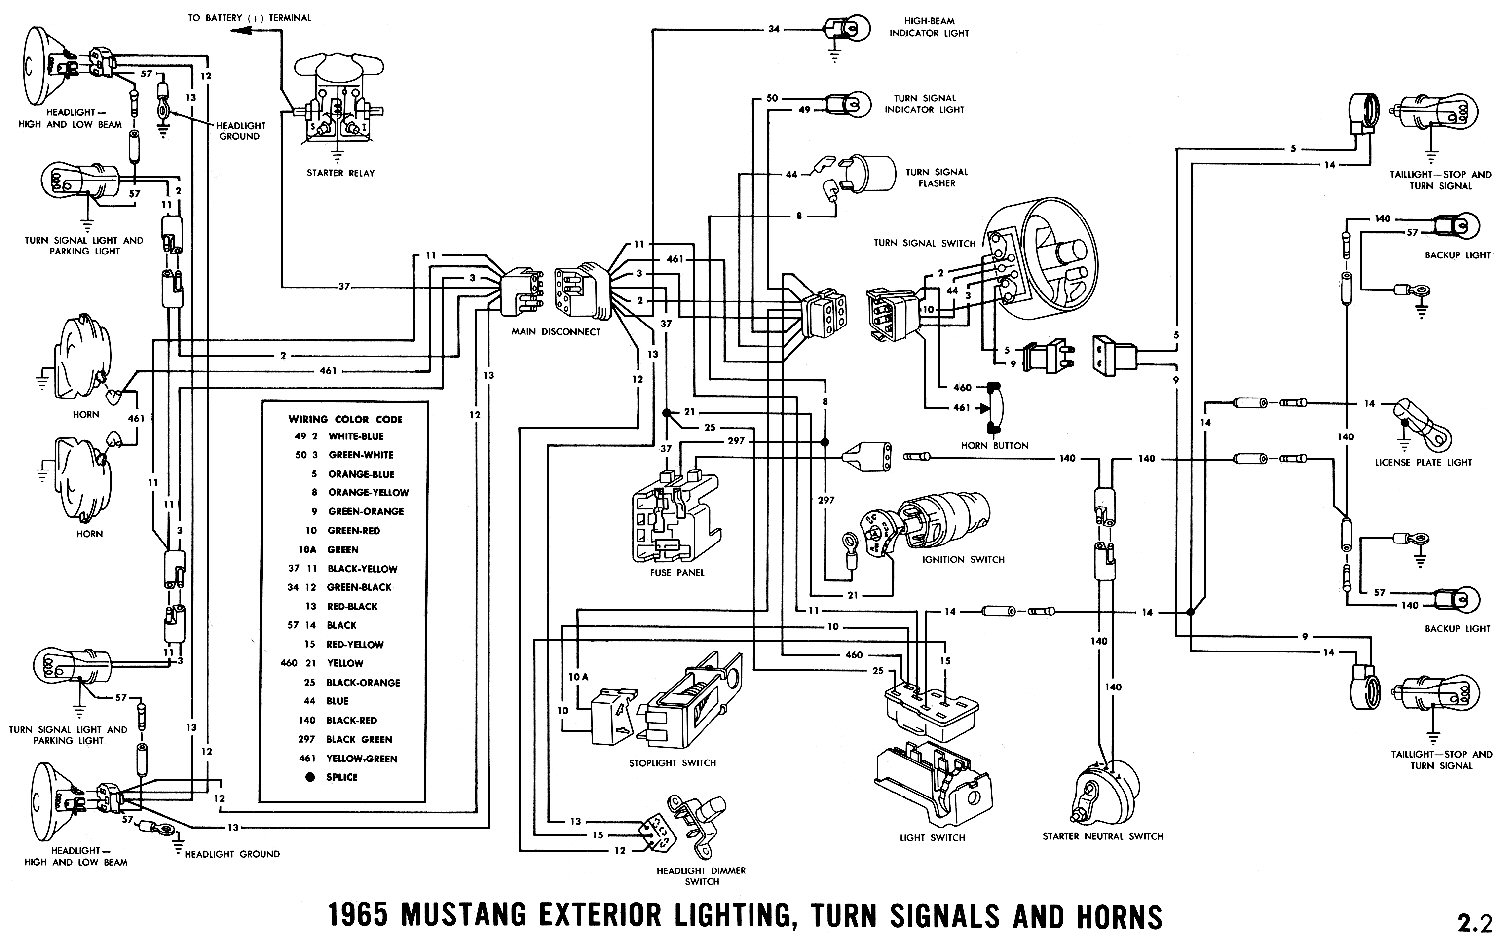 1965 mustang wiring diagram exterior lights